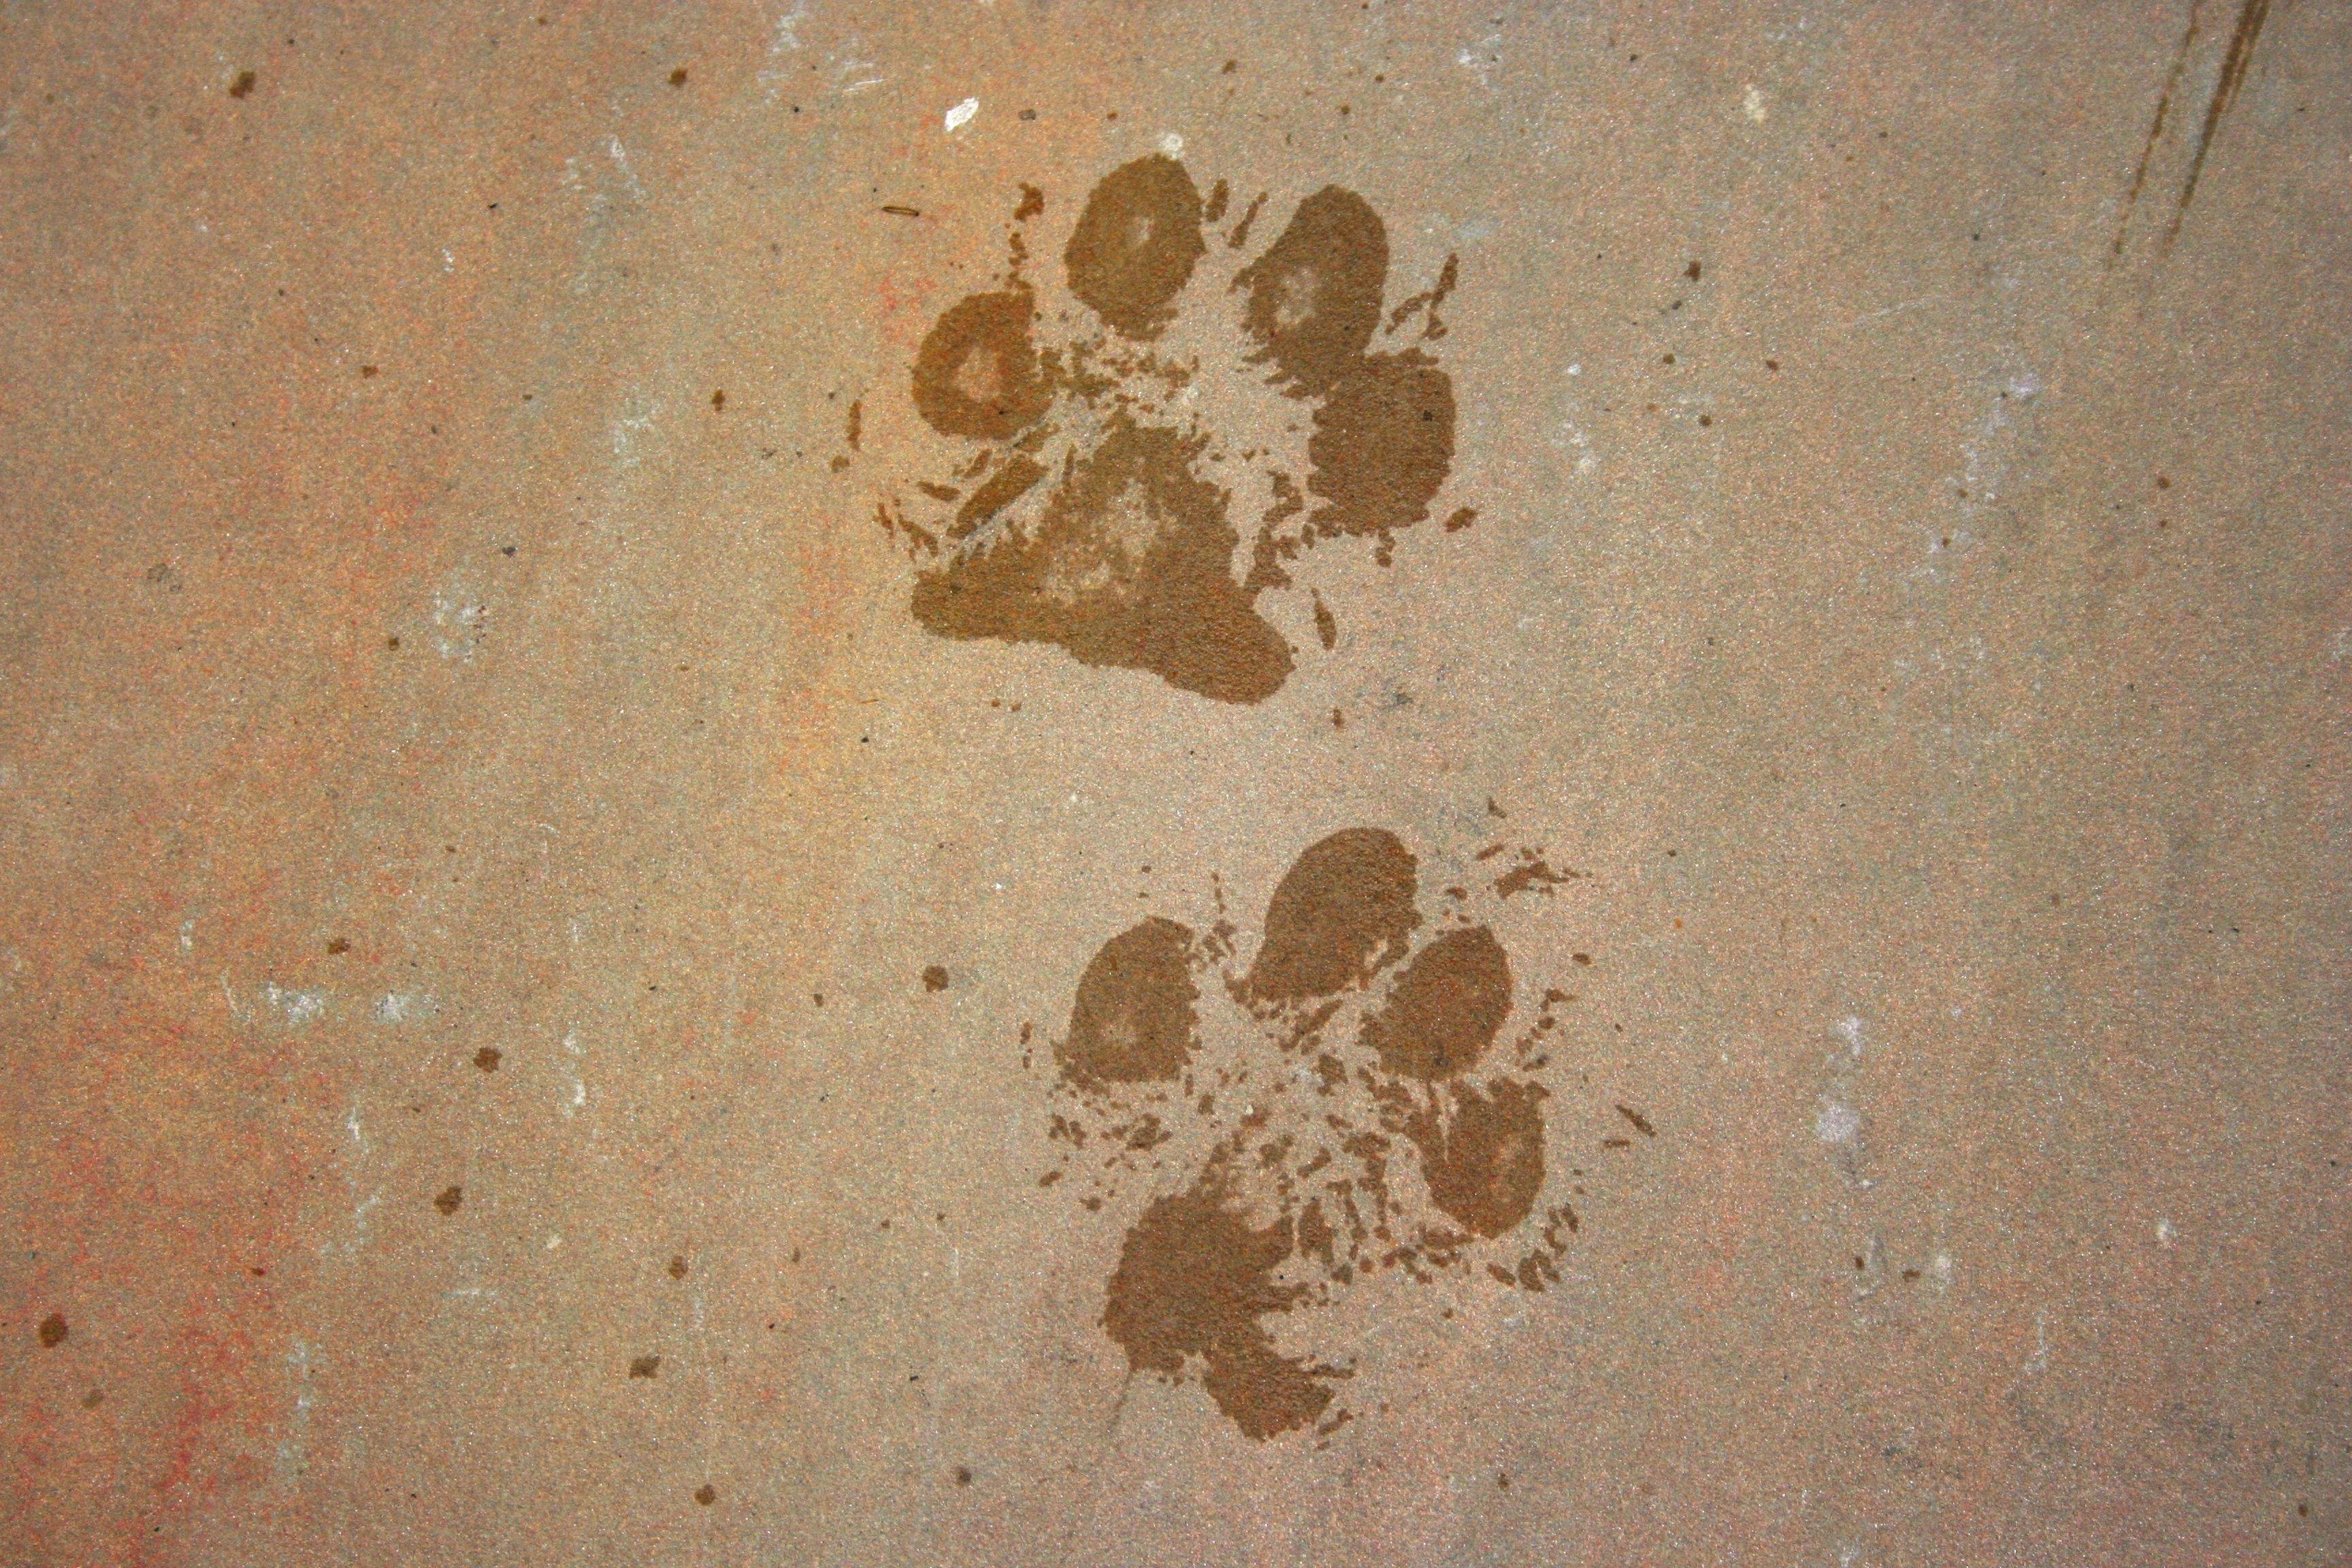 Free Images : Sand, Wood, Trail, Texture, Floor, Footprint, Dog Within Footprints In The Sand Wall Art (View 19 of 20)